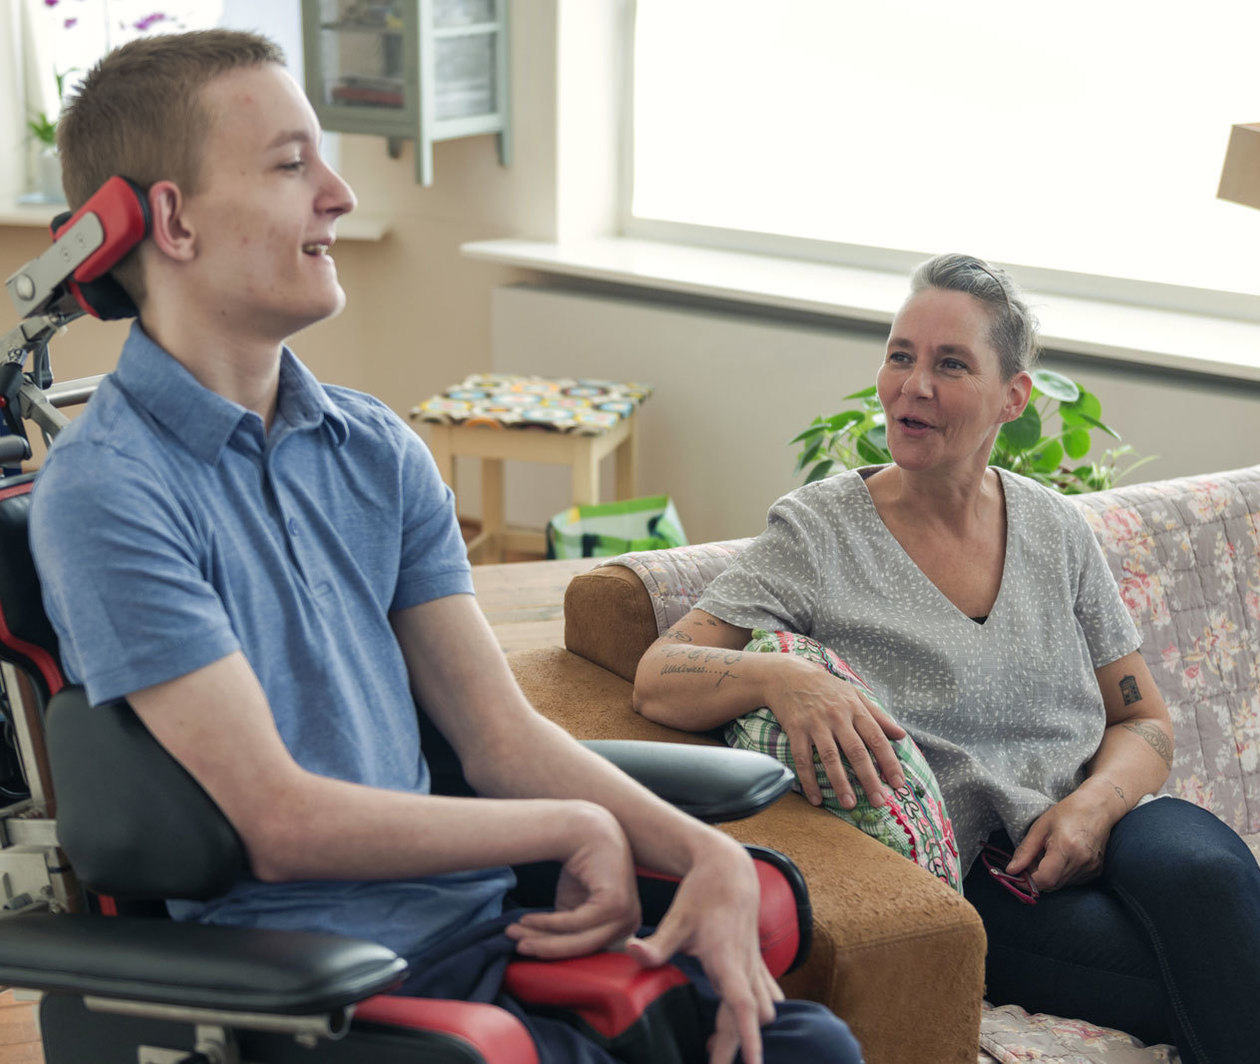 The Role of Personal Assistants in Disability Support